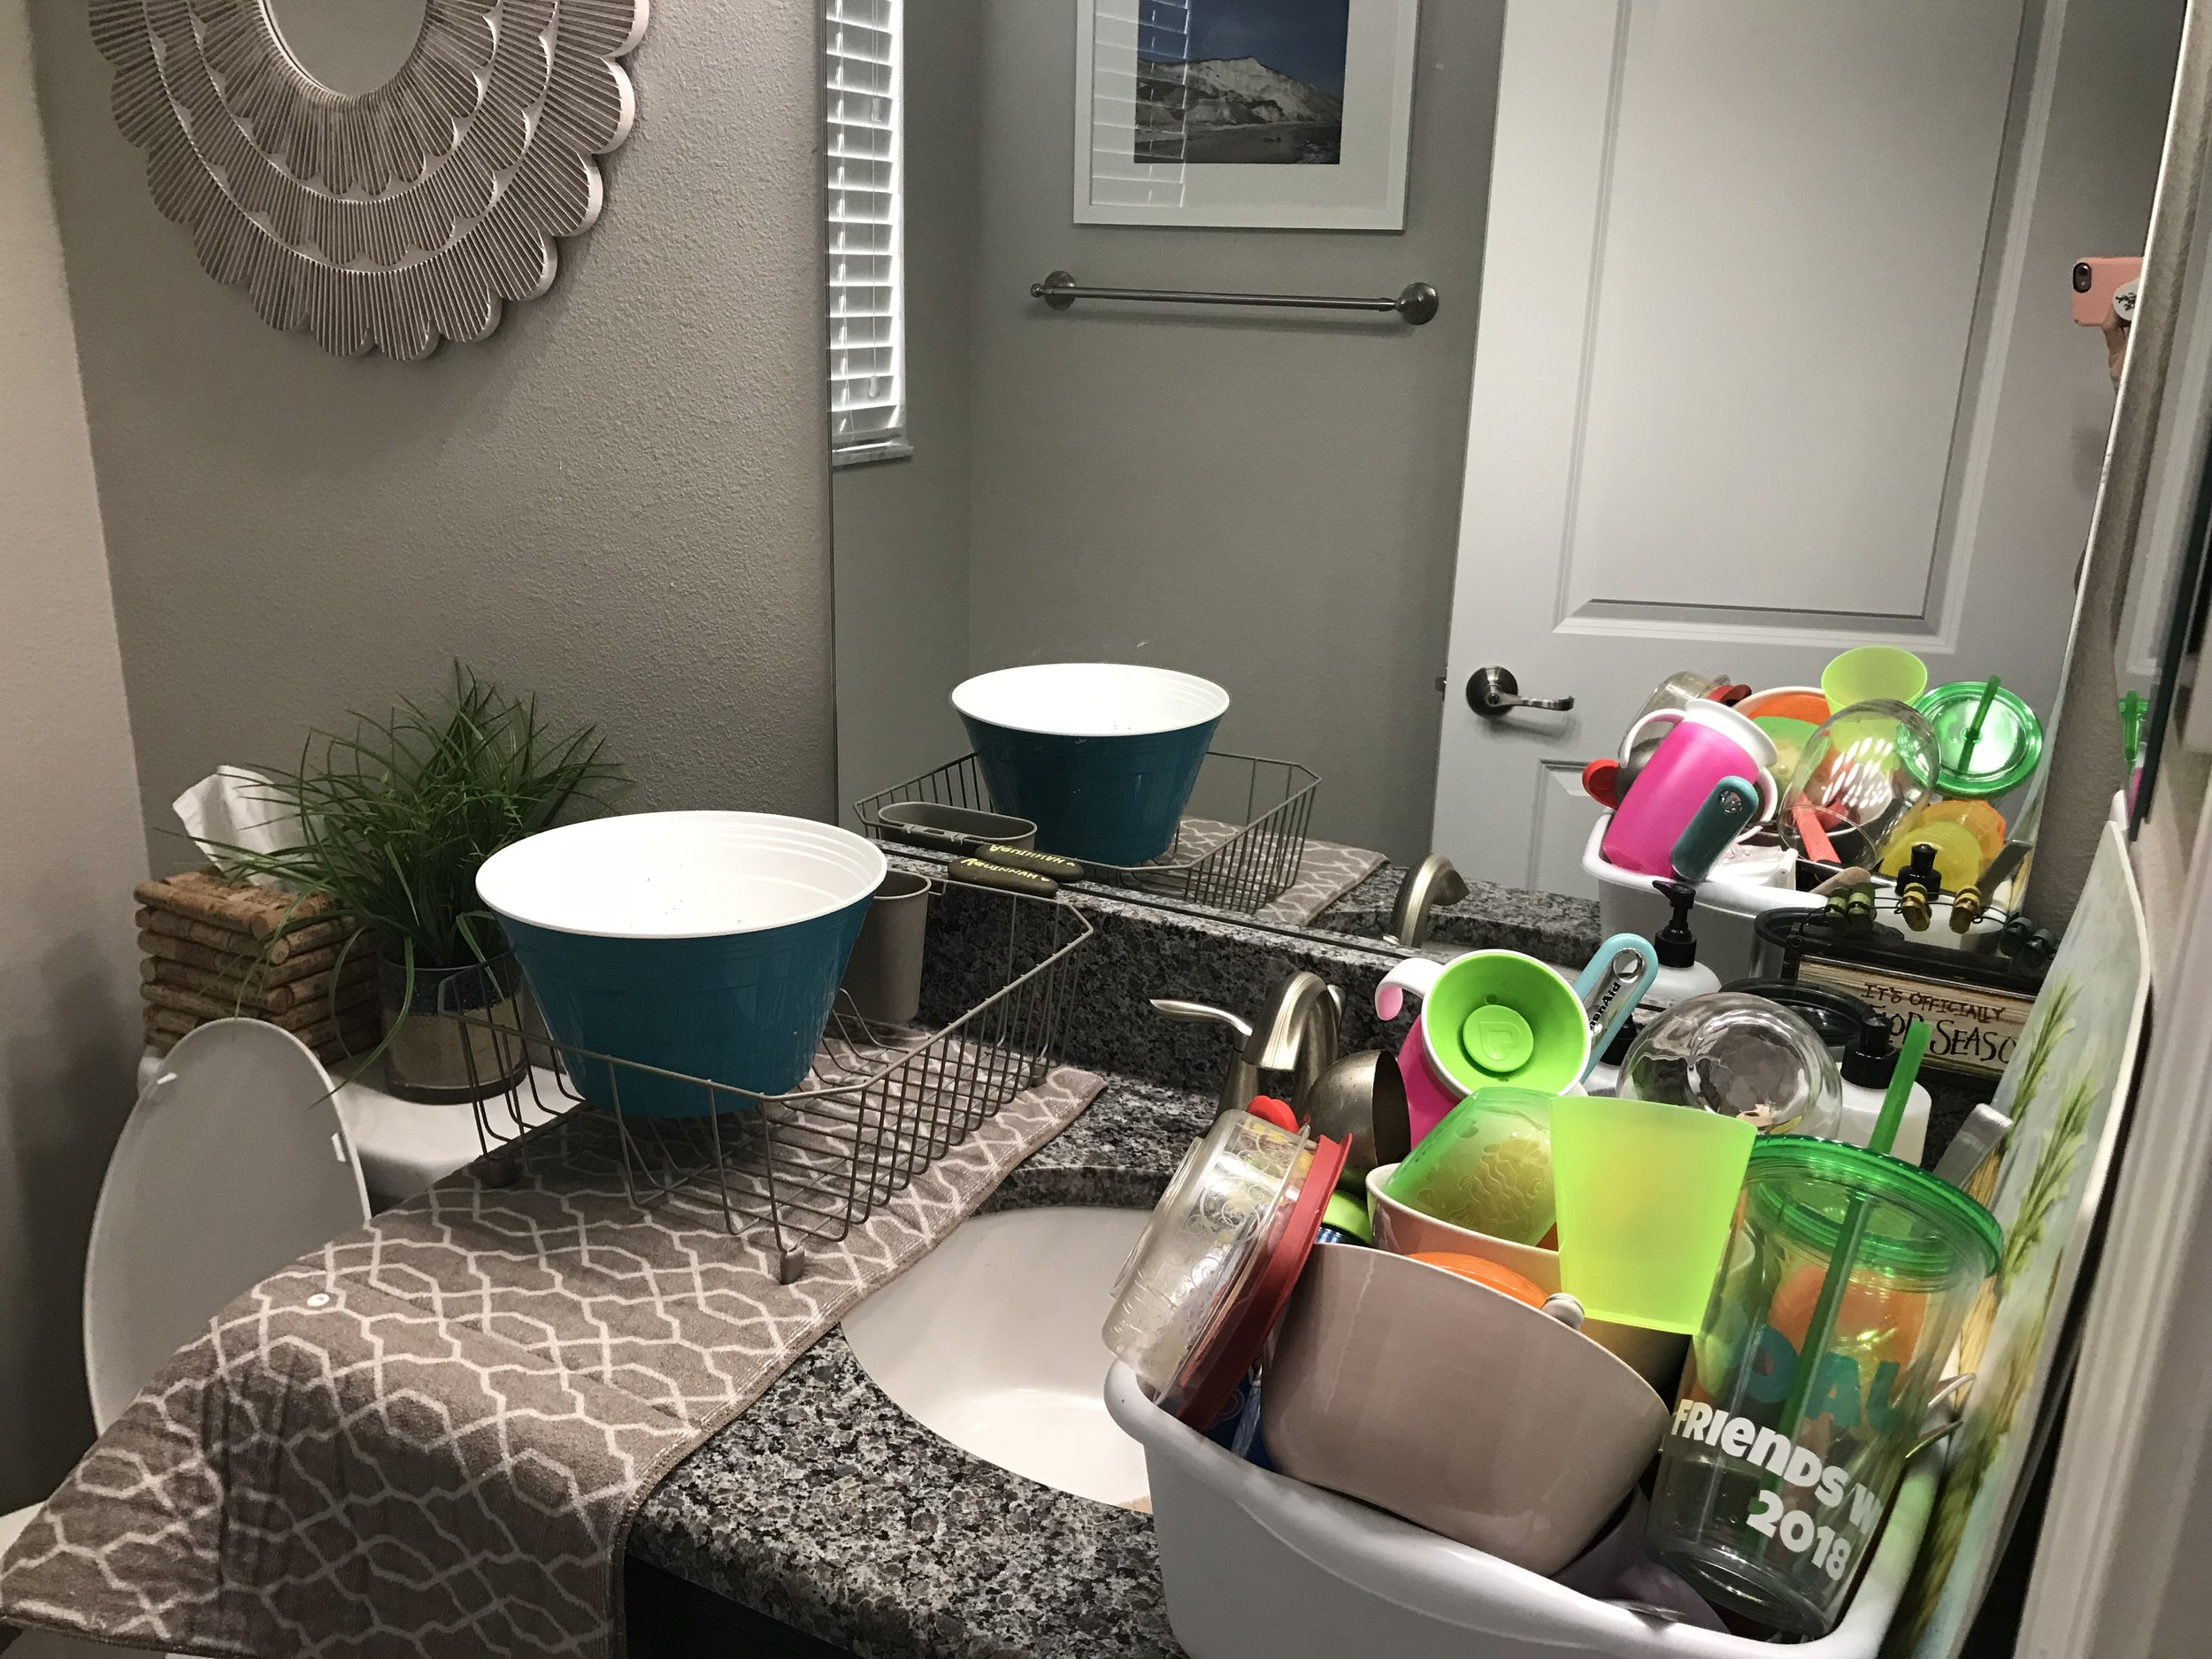 This is real life what our guest bathroom has looked like for the past month and a half. HELP ME.